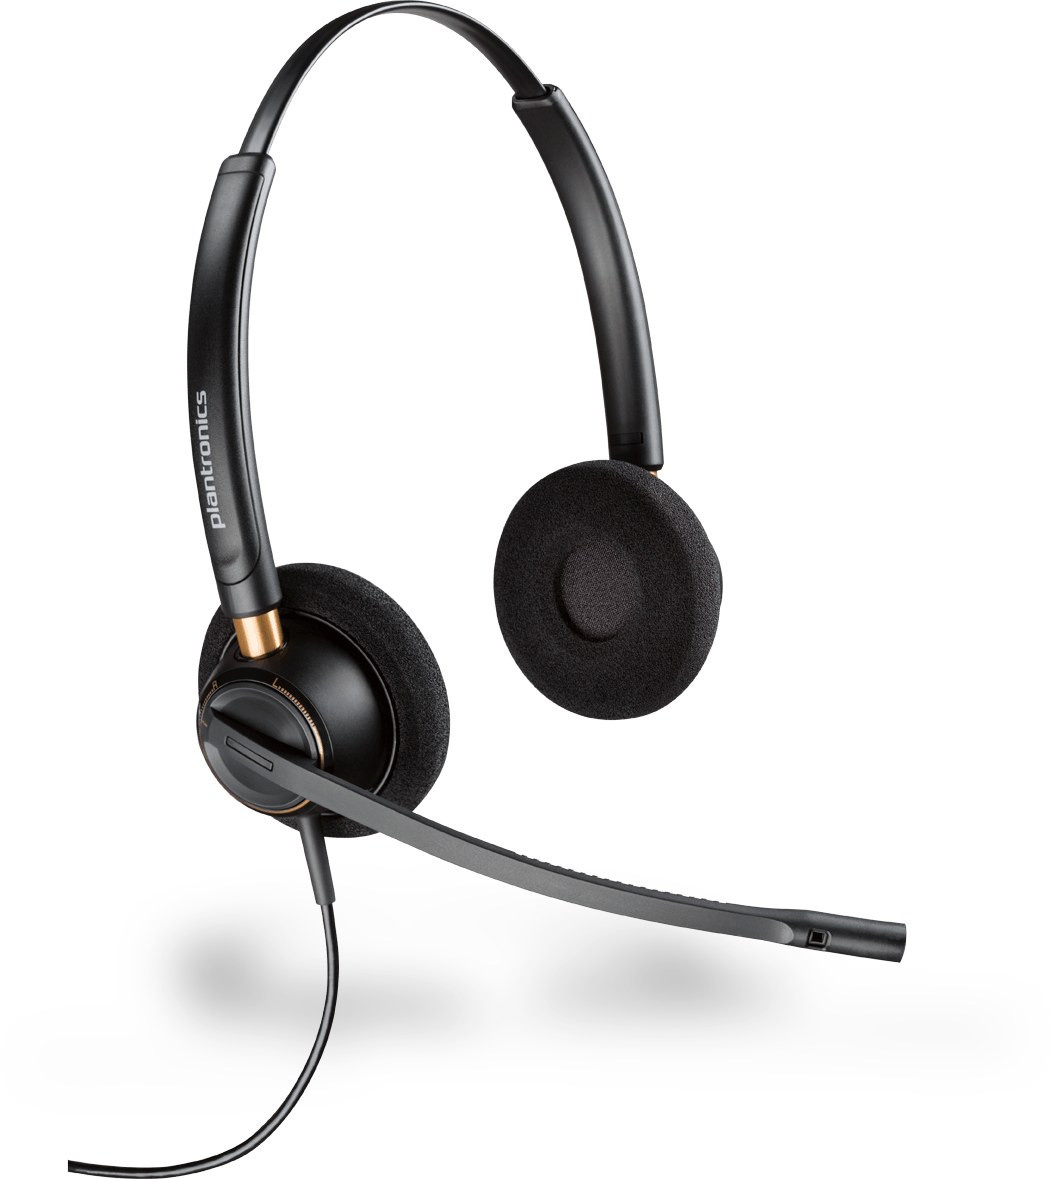 PLANTRONICS ENCOREPRO HW520 OTH STEREO NC QD CORDED HEADSET TOP